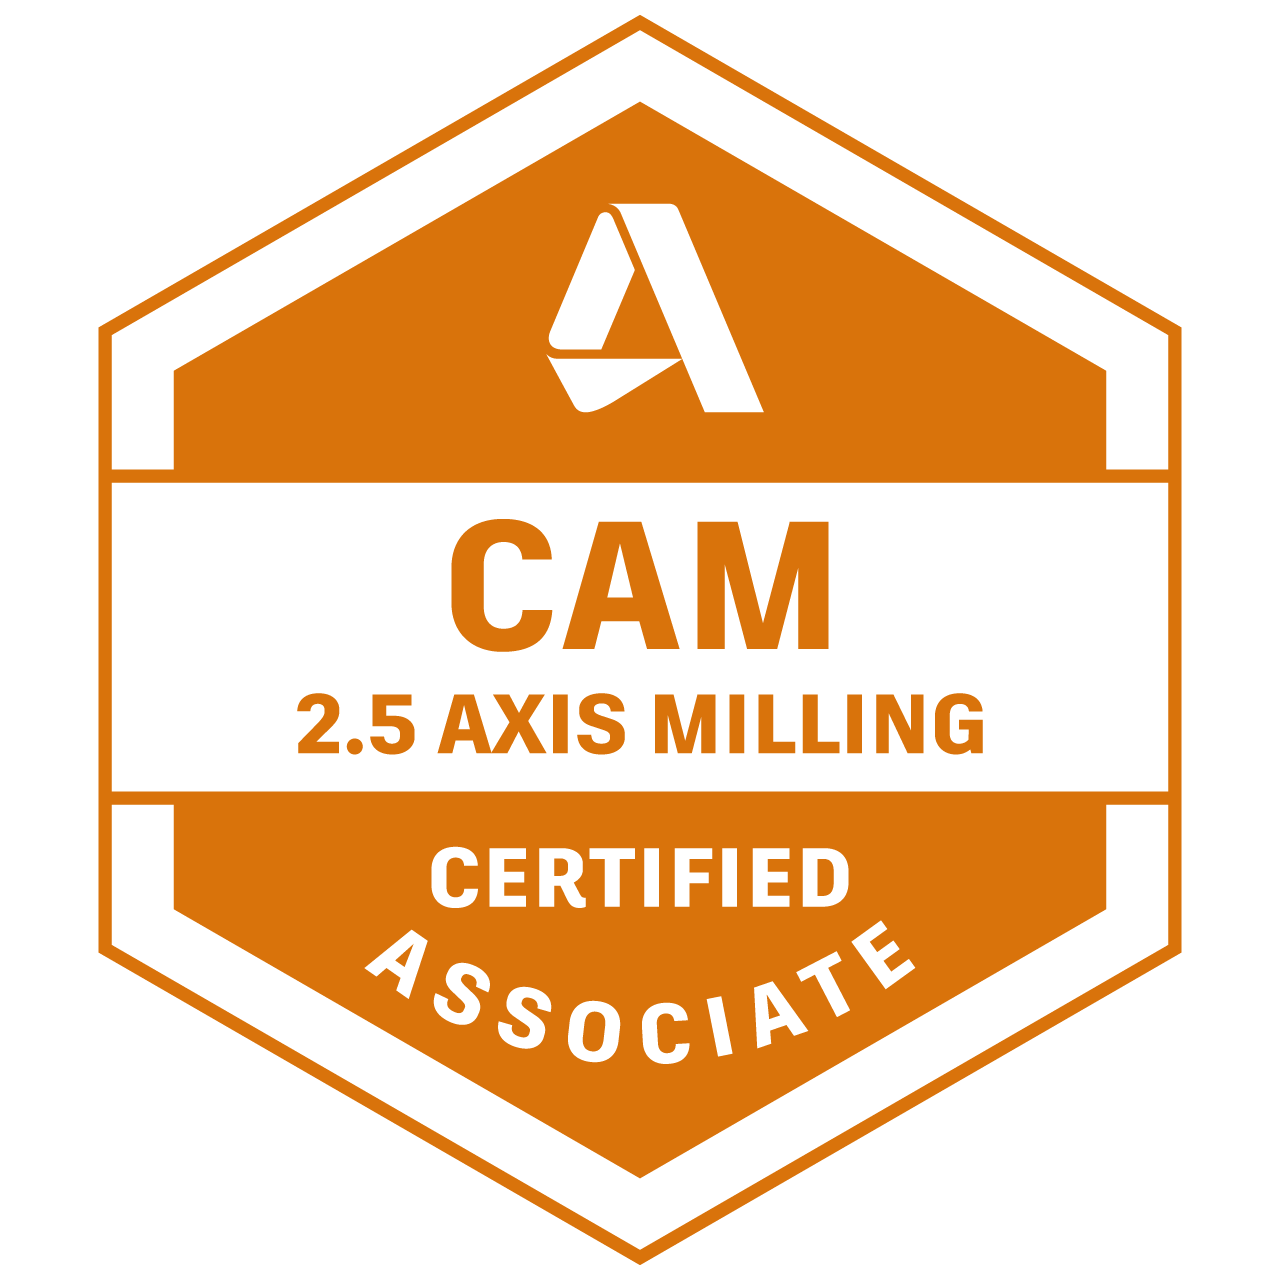 Autodesk Certified Associate in CAM for 2.5 Axis Milling